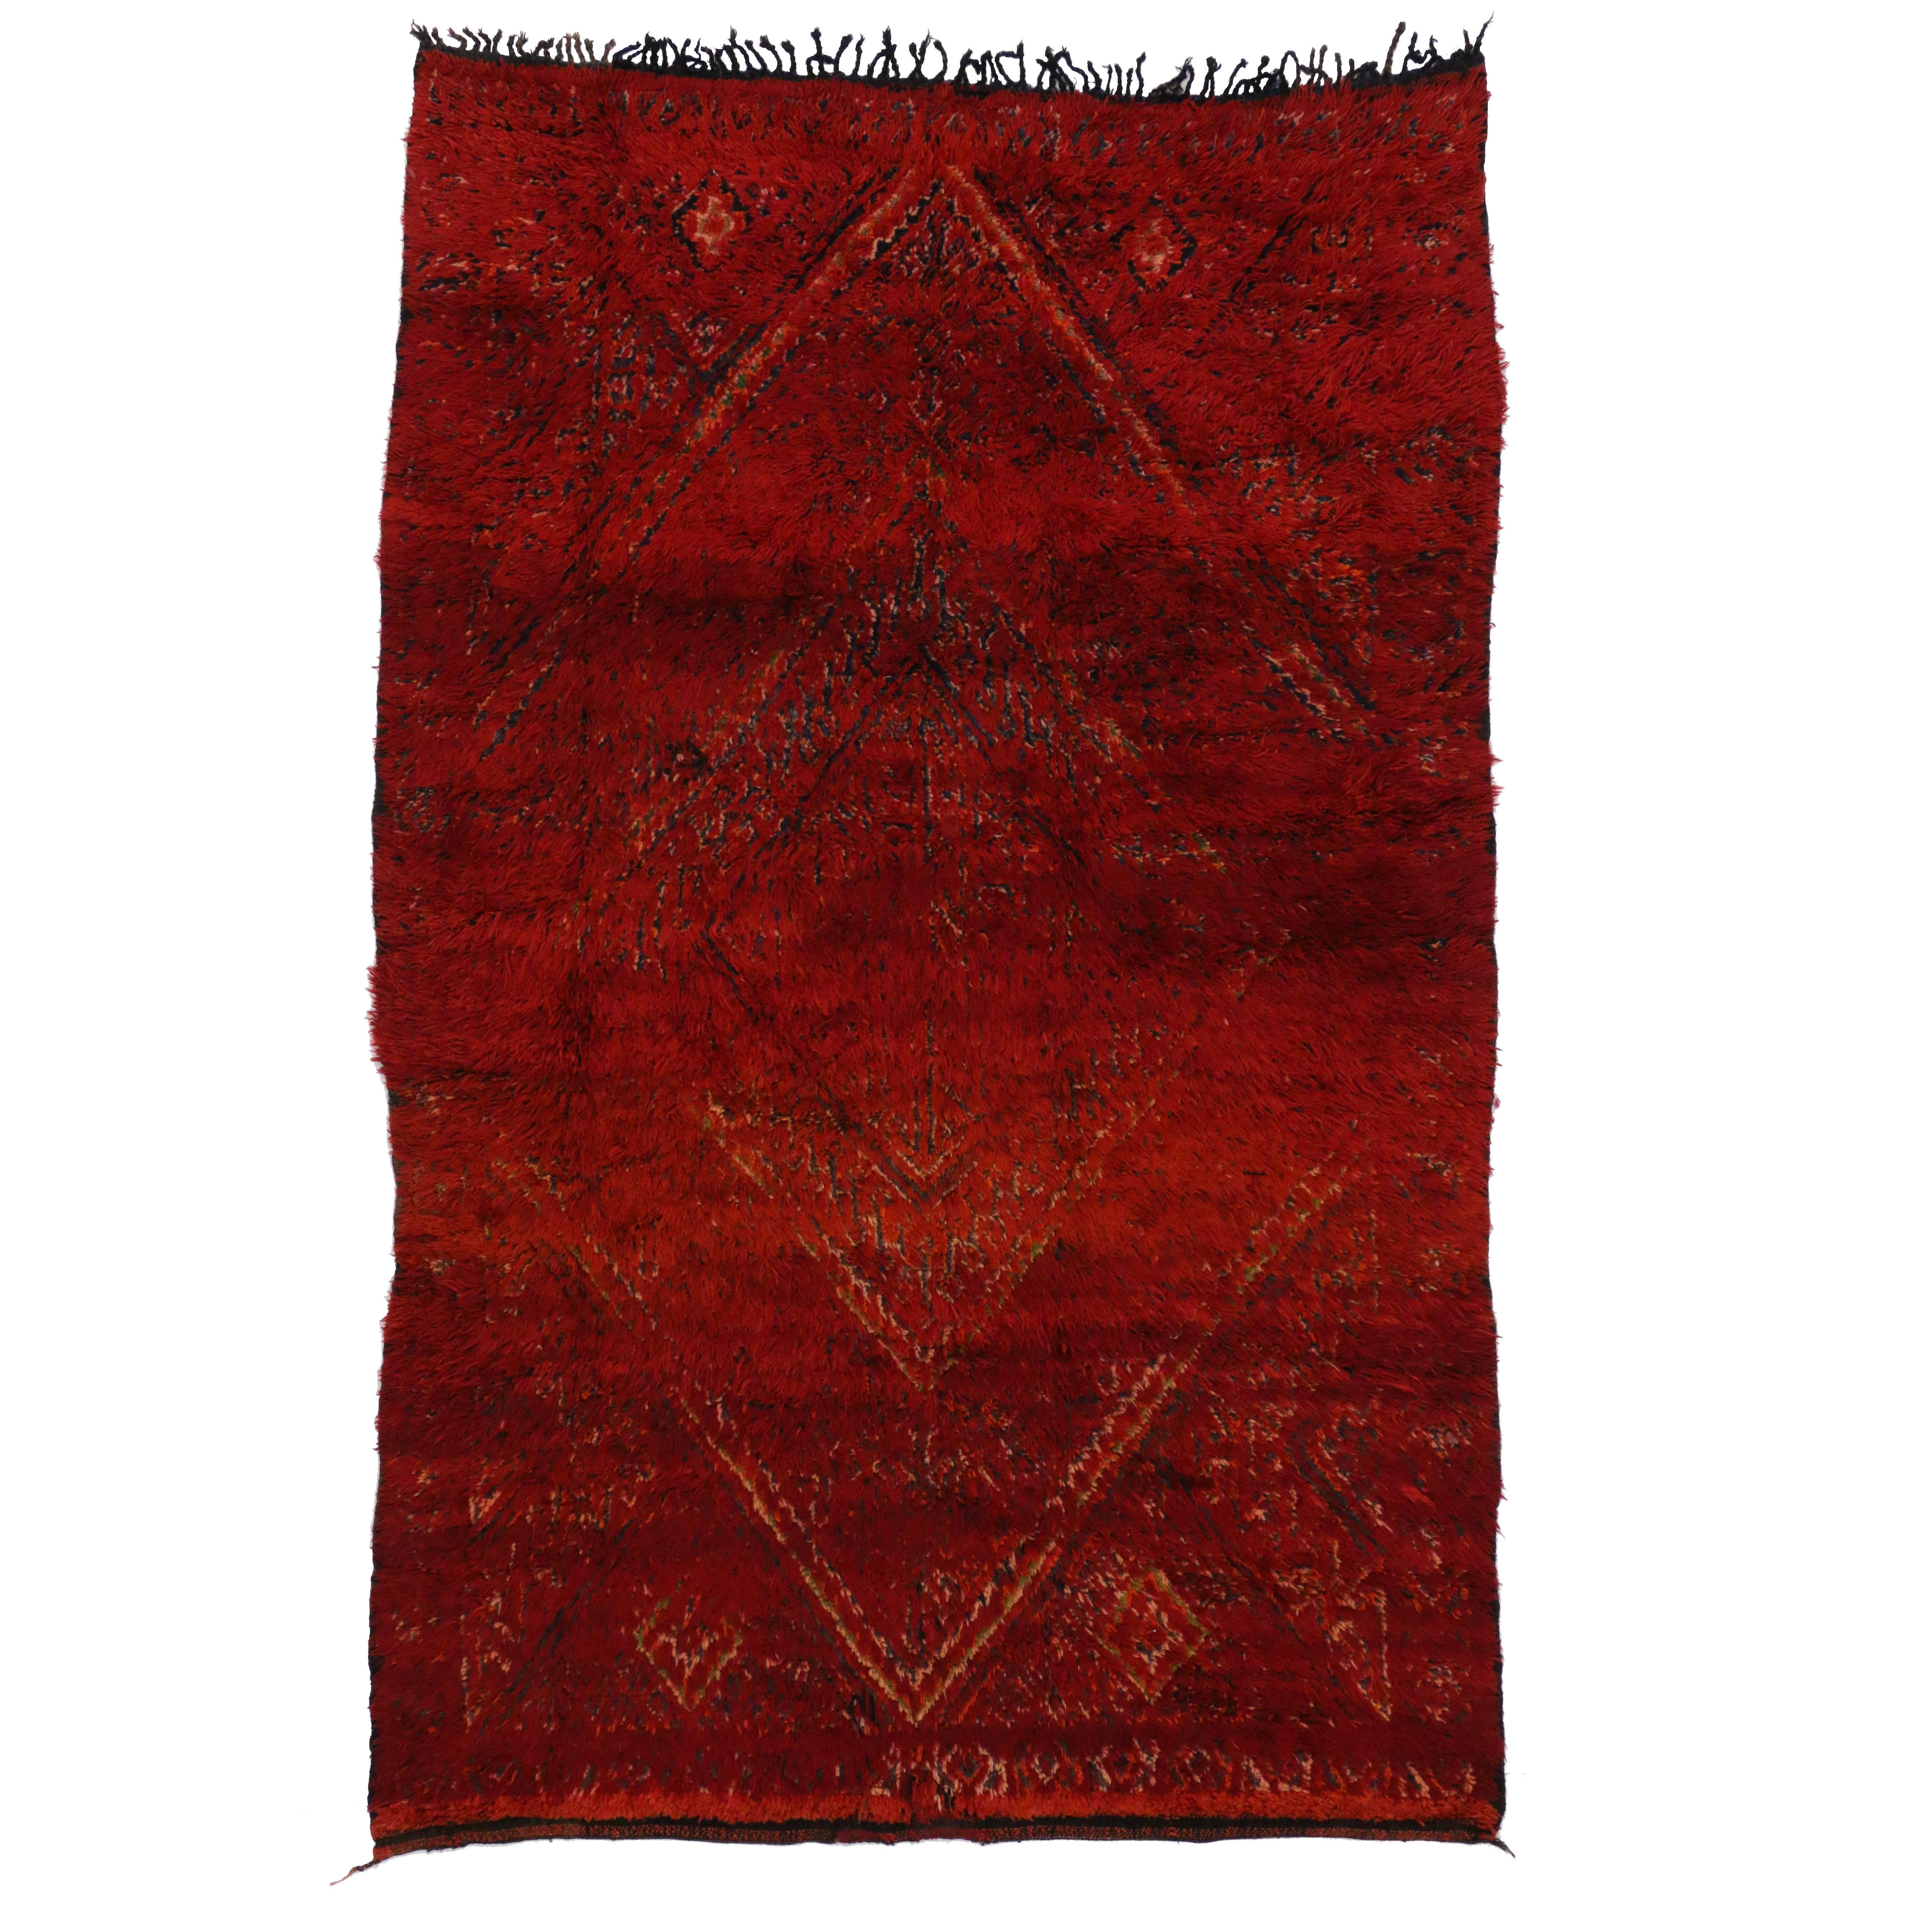 Vintage Berber Moroccan Rug with Luxe Bohemian Style, Red Moroccan Area Rug